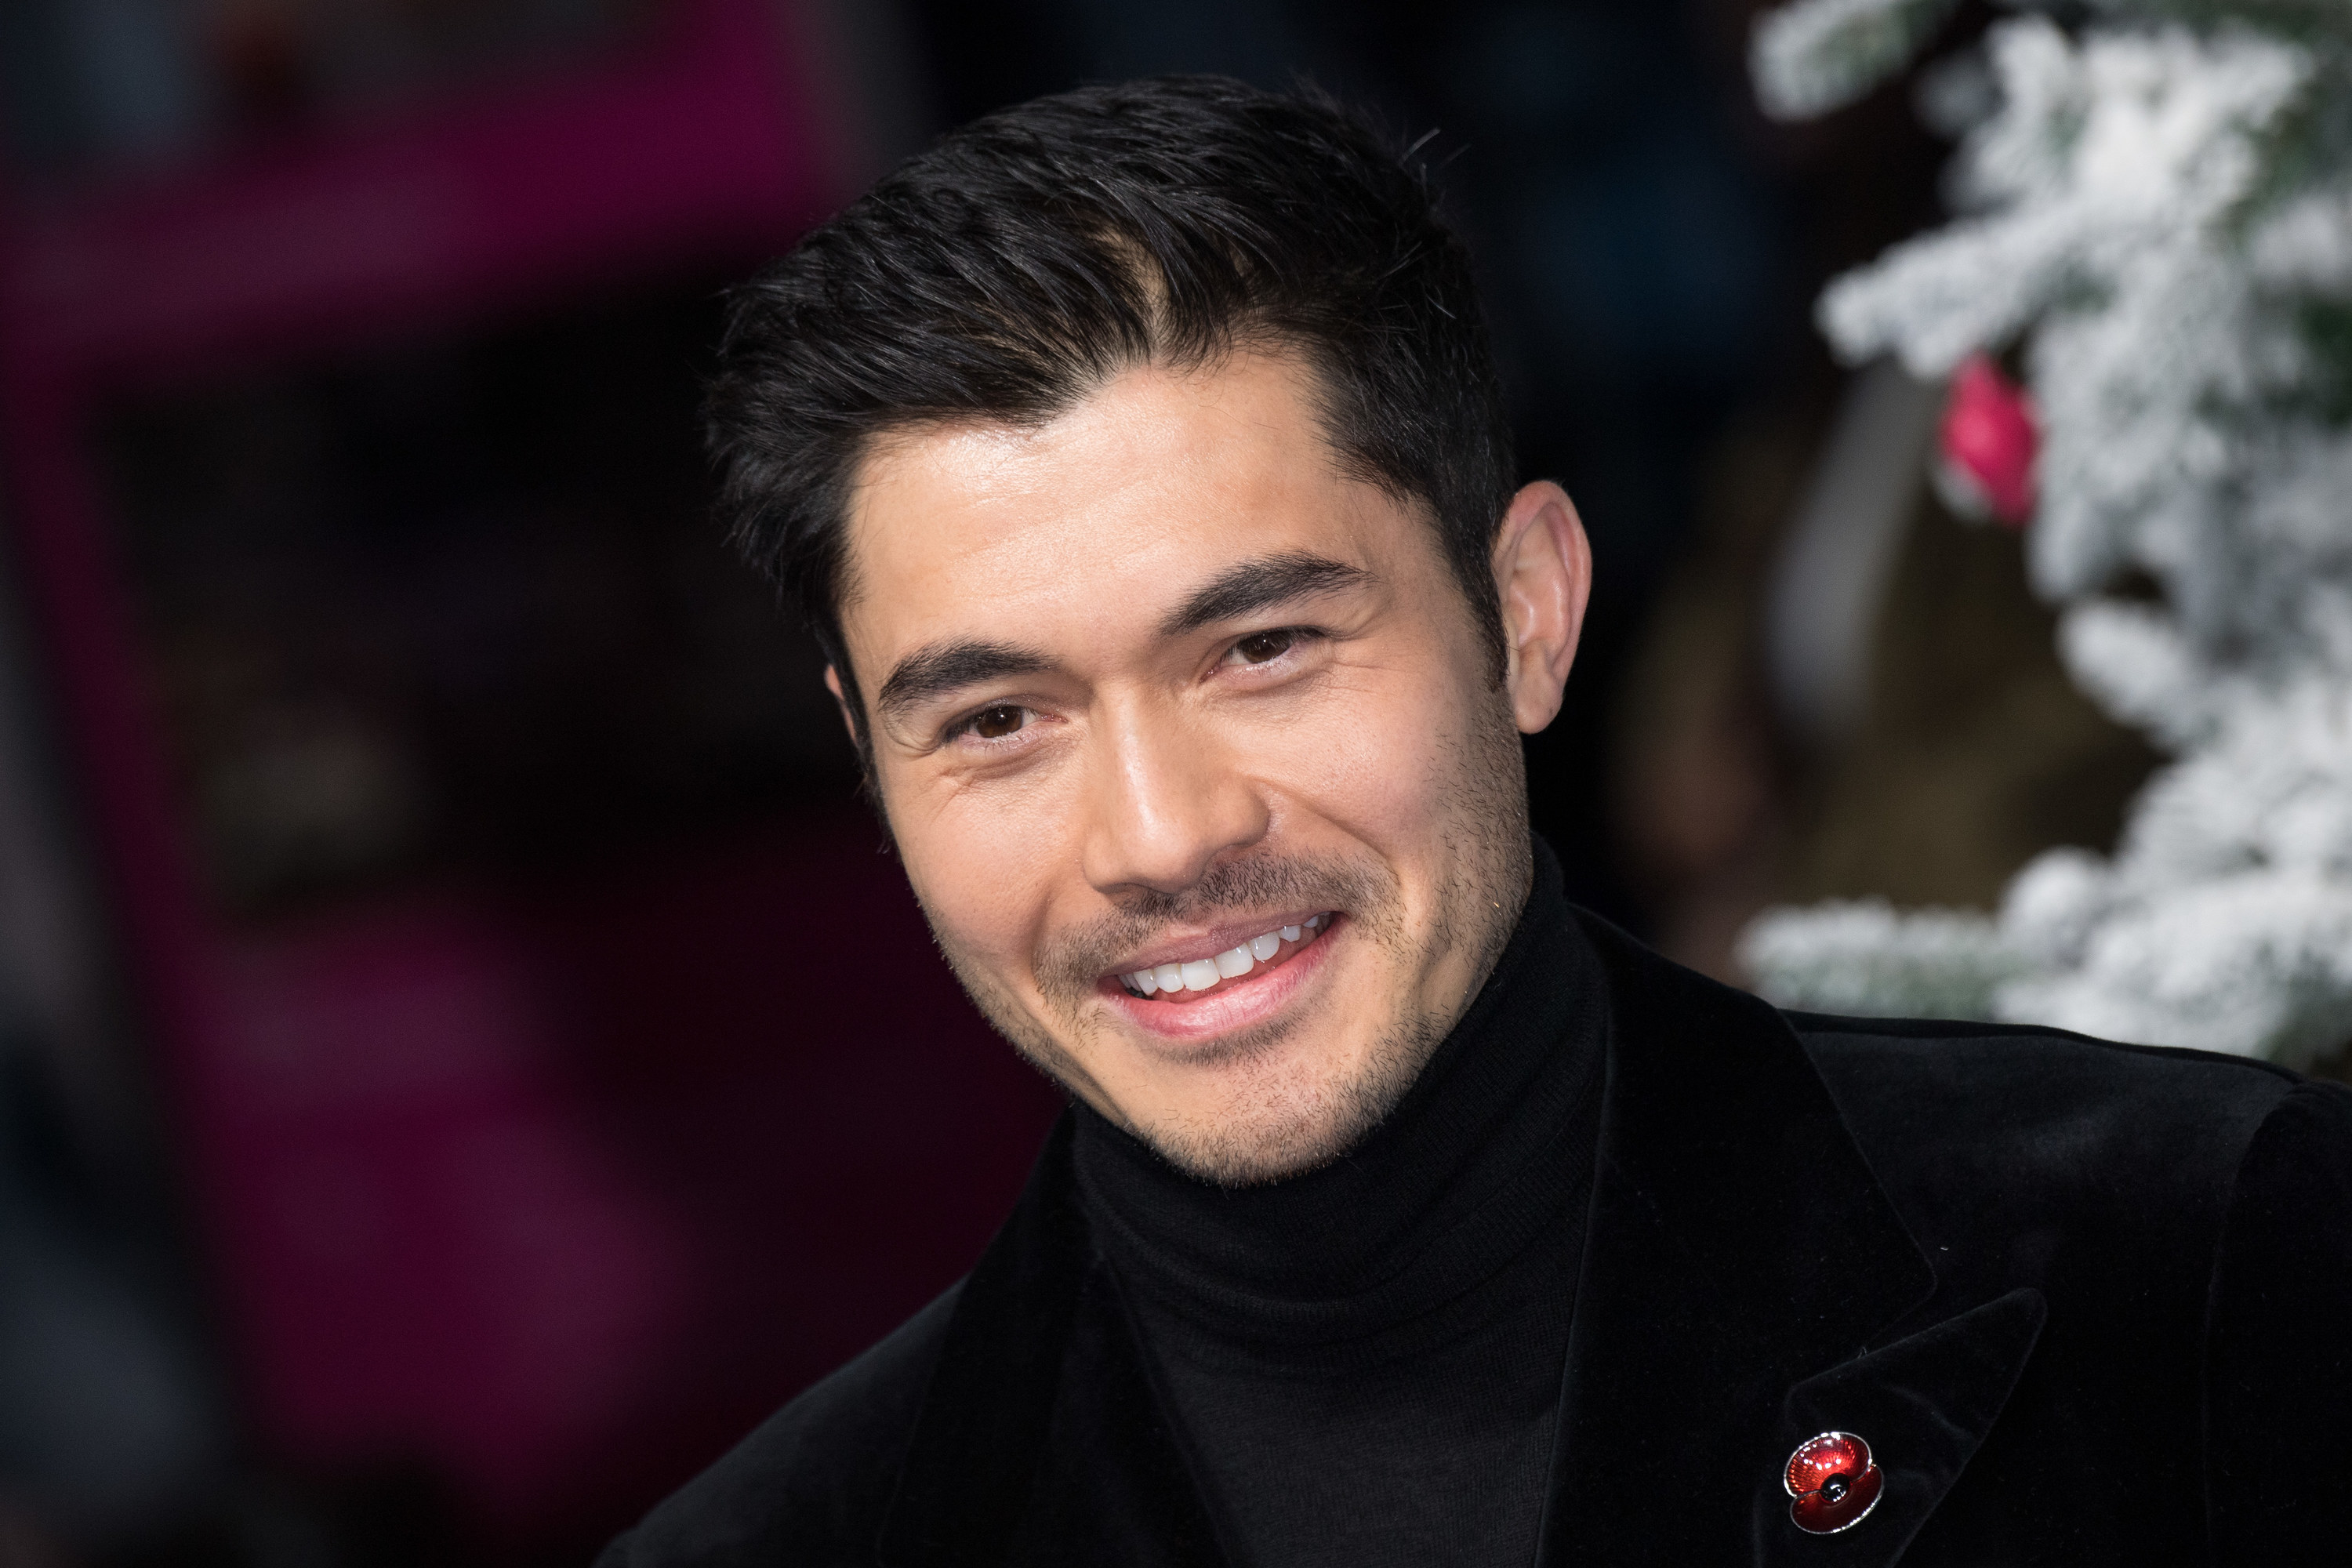 """Henry Golding attends the """"Last Christmas"""" UK Premiere at BFI Southbank on November 11, 2019 in London, England"""